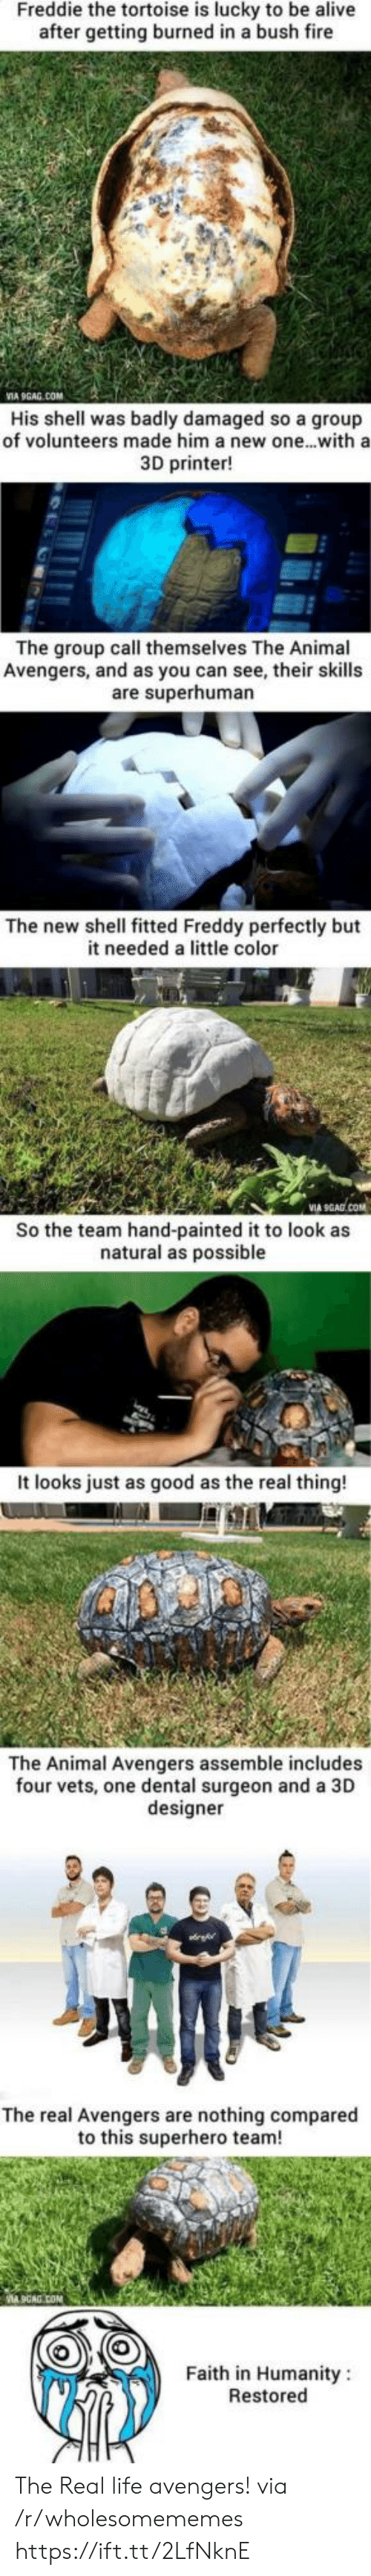 freddy: Freddie the tortoise is lucky to be alive  after getting burned in a bush fire  VIA 9GAG.COM  His shell was badly damaged so a group  of volunteers made him a new one...with a  3D printer!  The group call themselves The Animal  Avengers, and as you can see, their skills  are superhuman  The new shell fitted Freddy perfectly but  it needed a little color  So the team hand-painted it to look as  natural as possible  It looks just as good as the real thing!  The Animal Avengers assemble includes  four vets, one dental surgeon and a 3D  designer  The real Avengers are nothing compared  to this superhero team!  Faith in Humanity  Restored The Real life avengers! via /r/wholesomememes https://ift.tt/2LfNknE